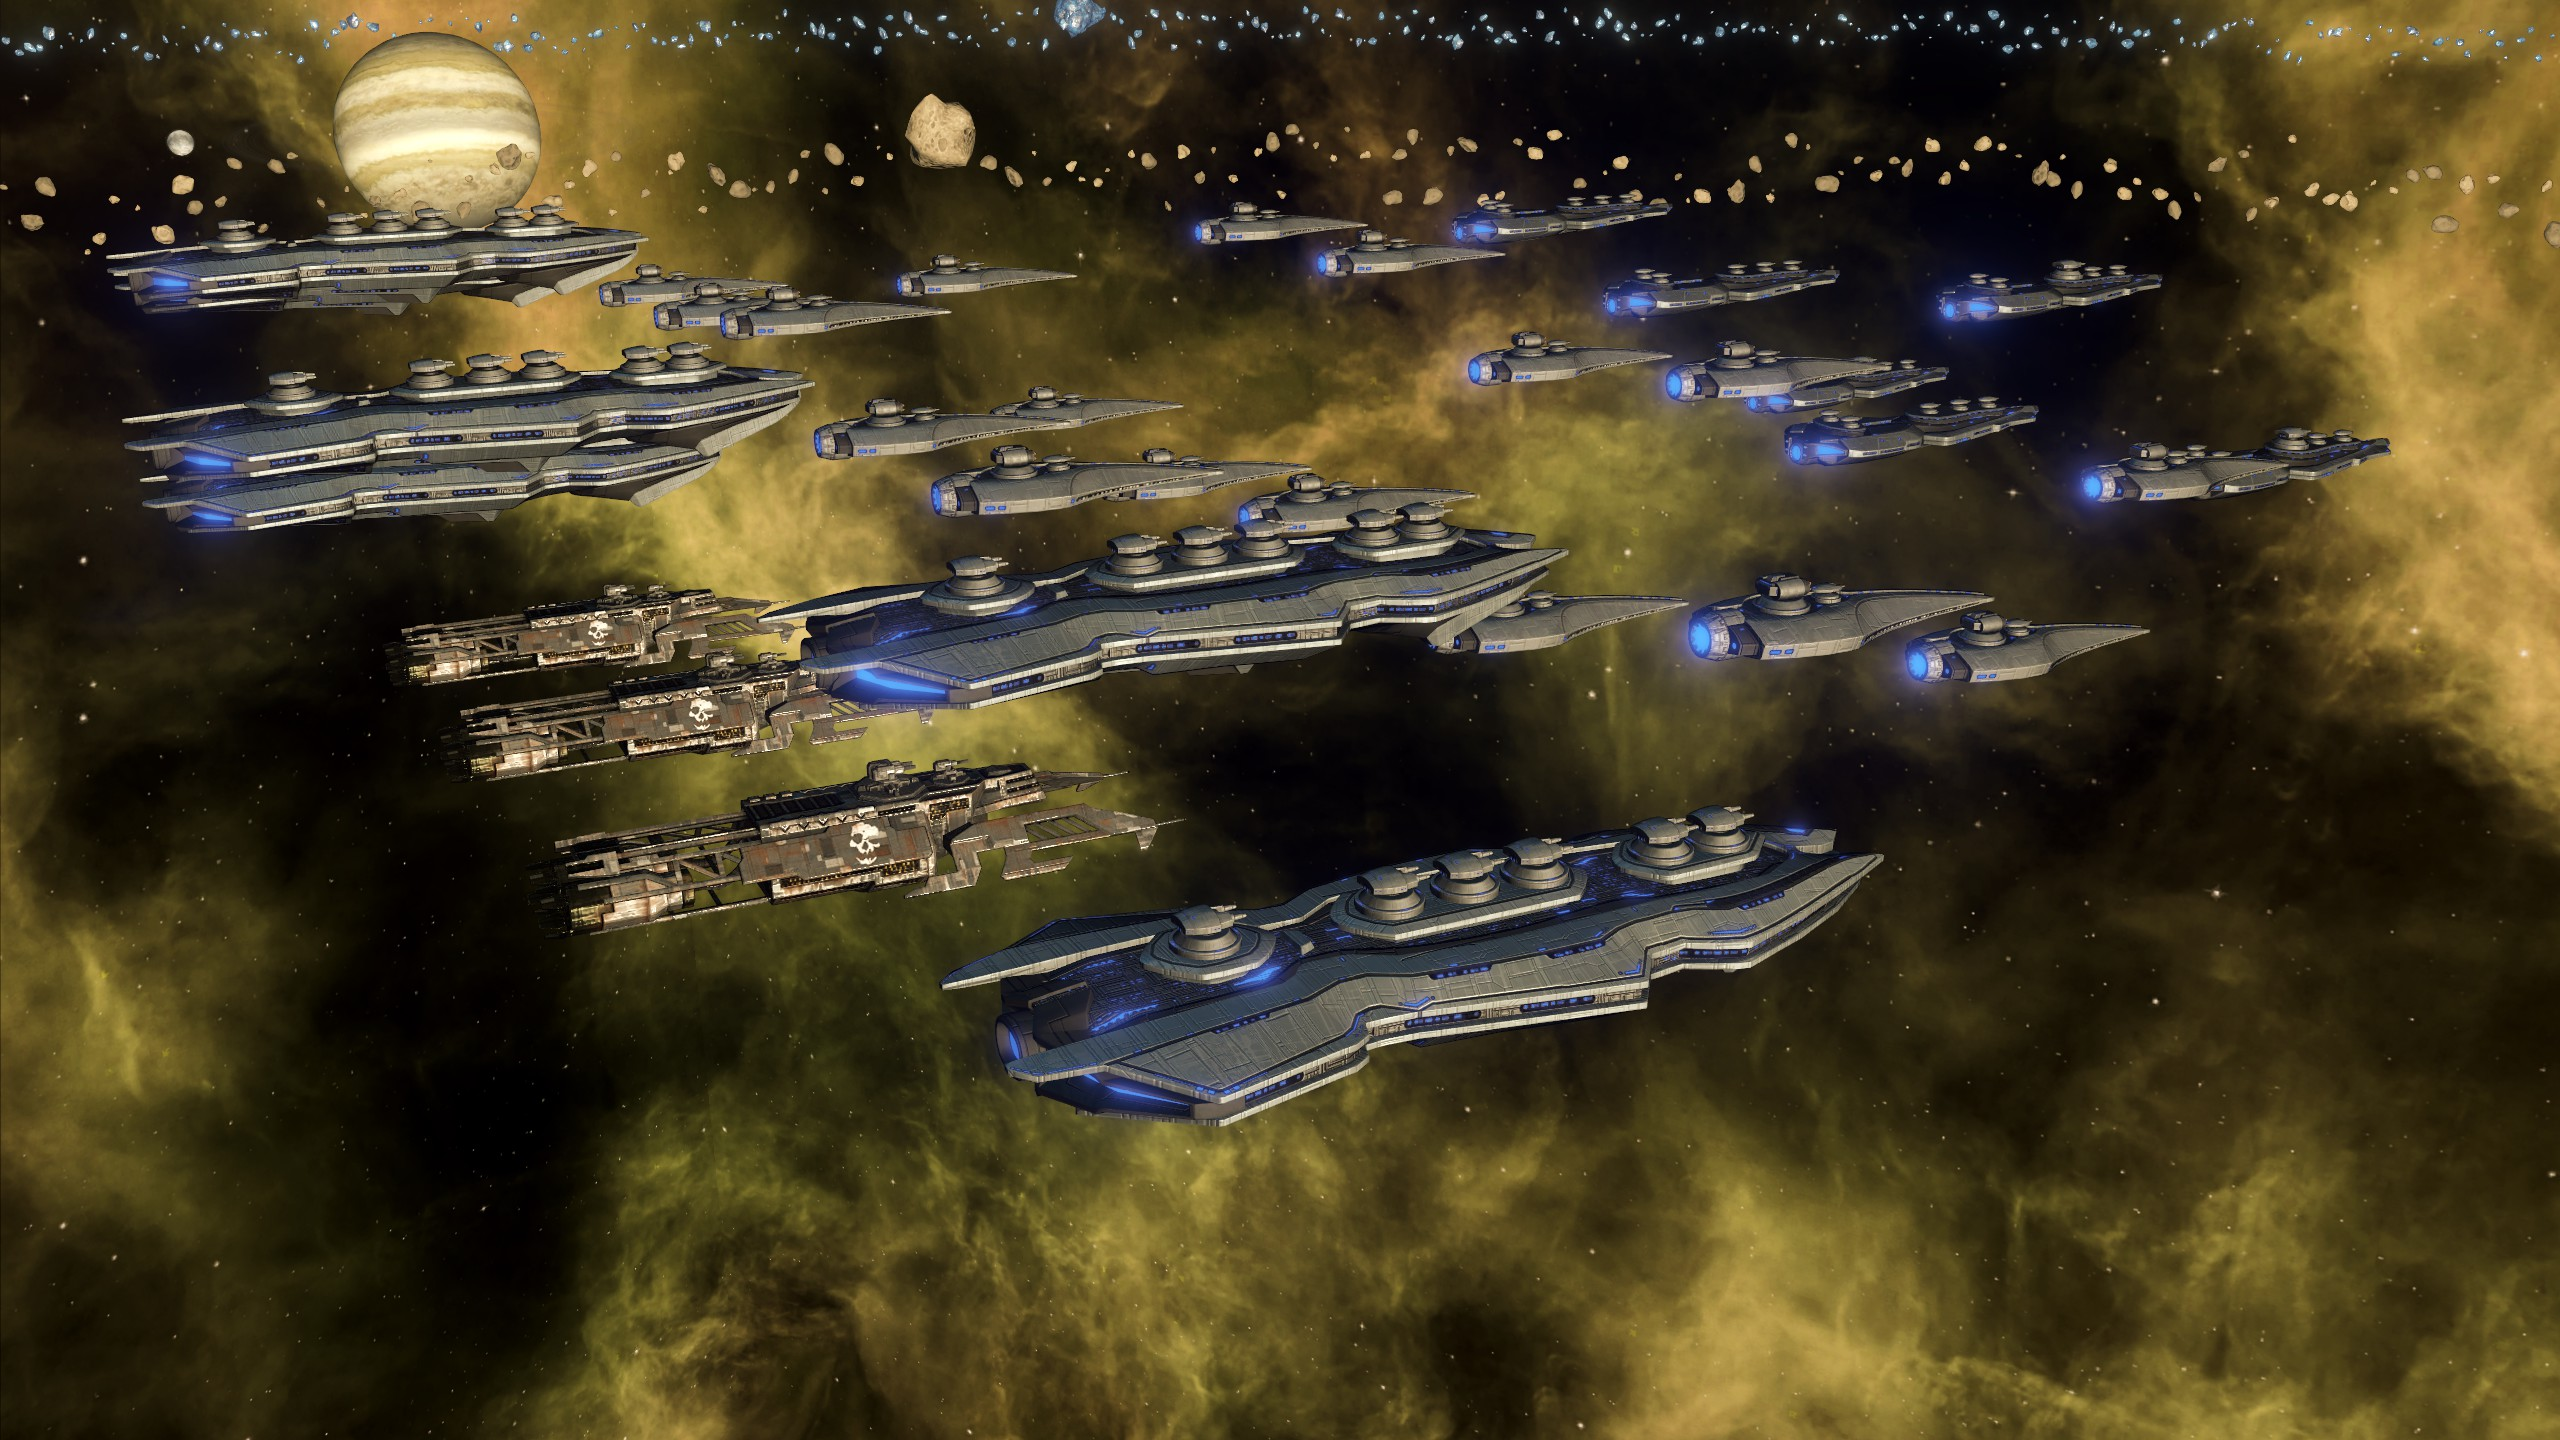 Get Stellaris for a single dollar in this Humble Bundle